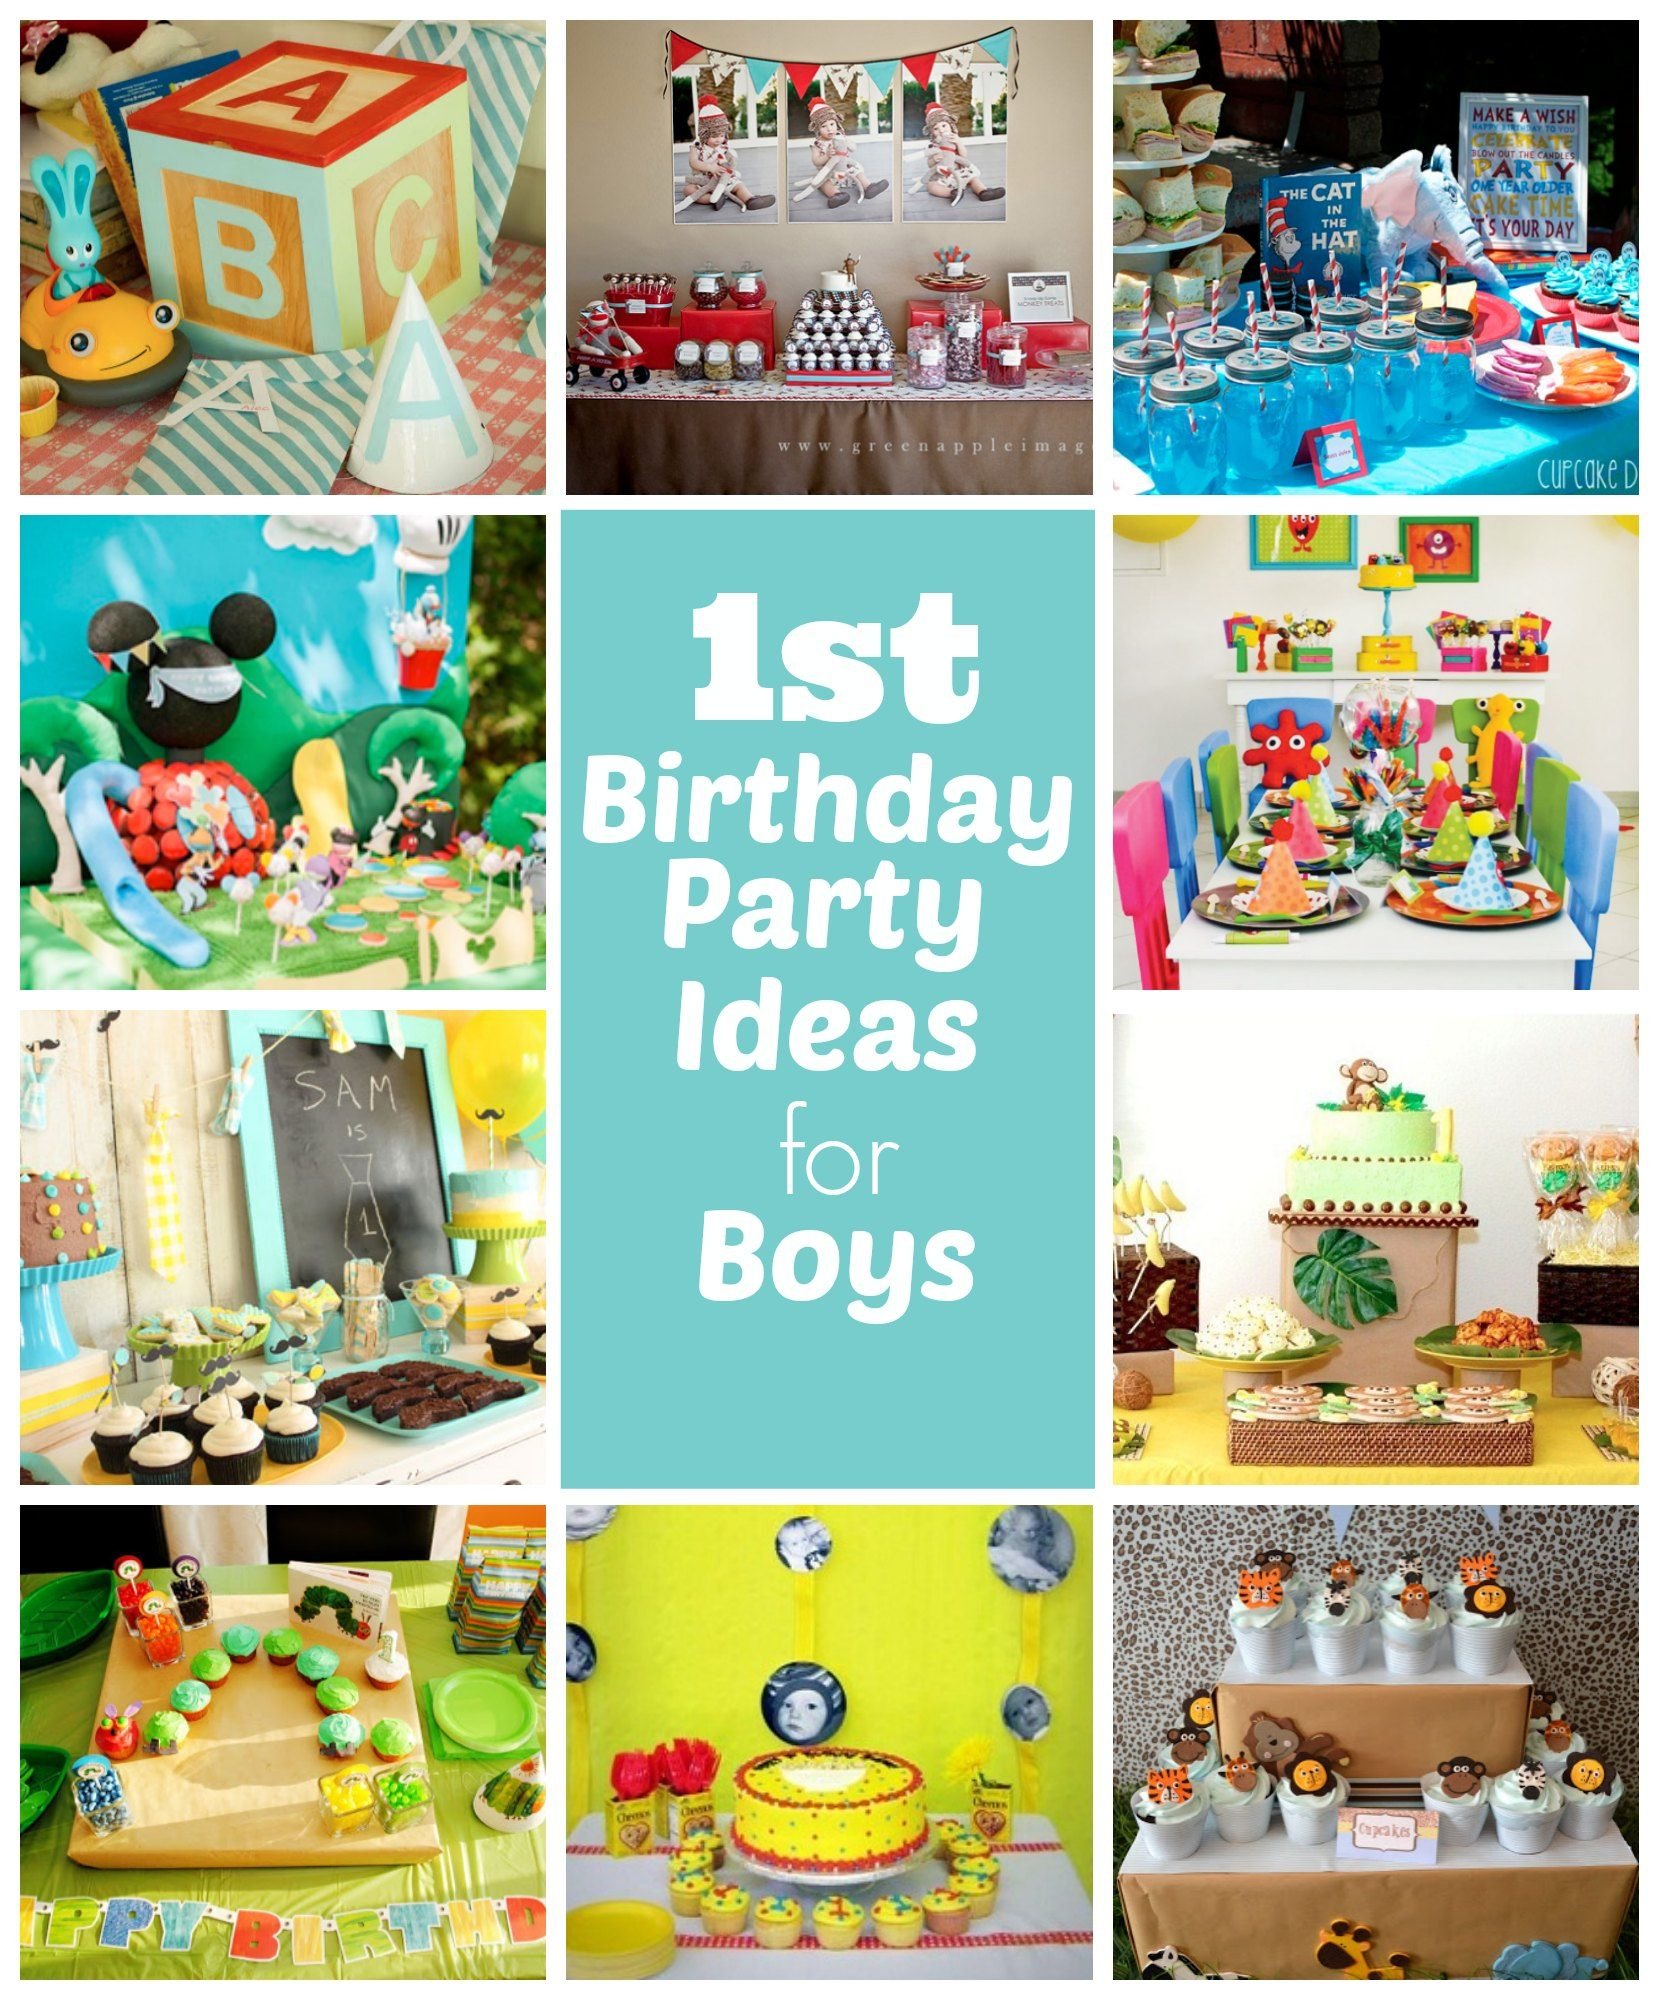 1st Birthday Party Ideas for Boys - Great ideas including ...